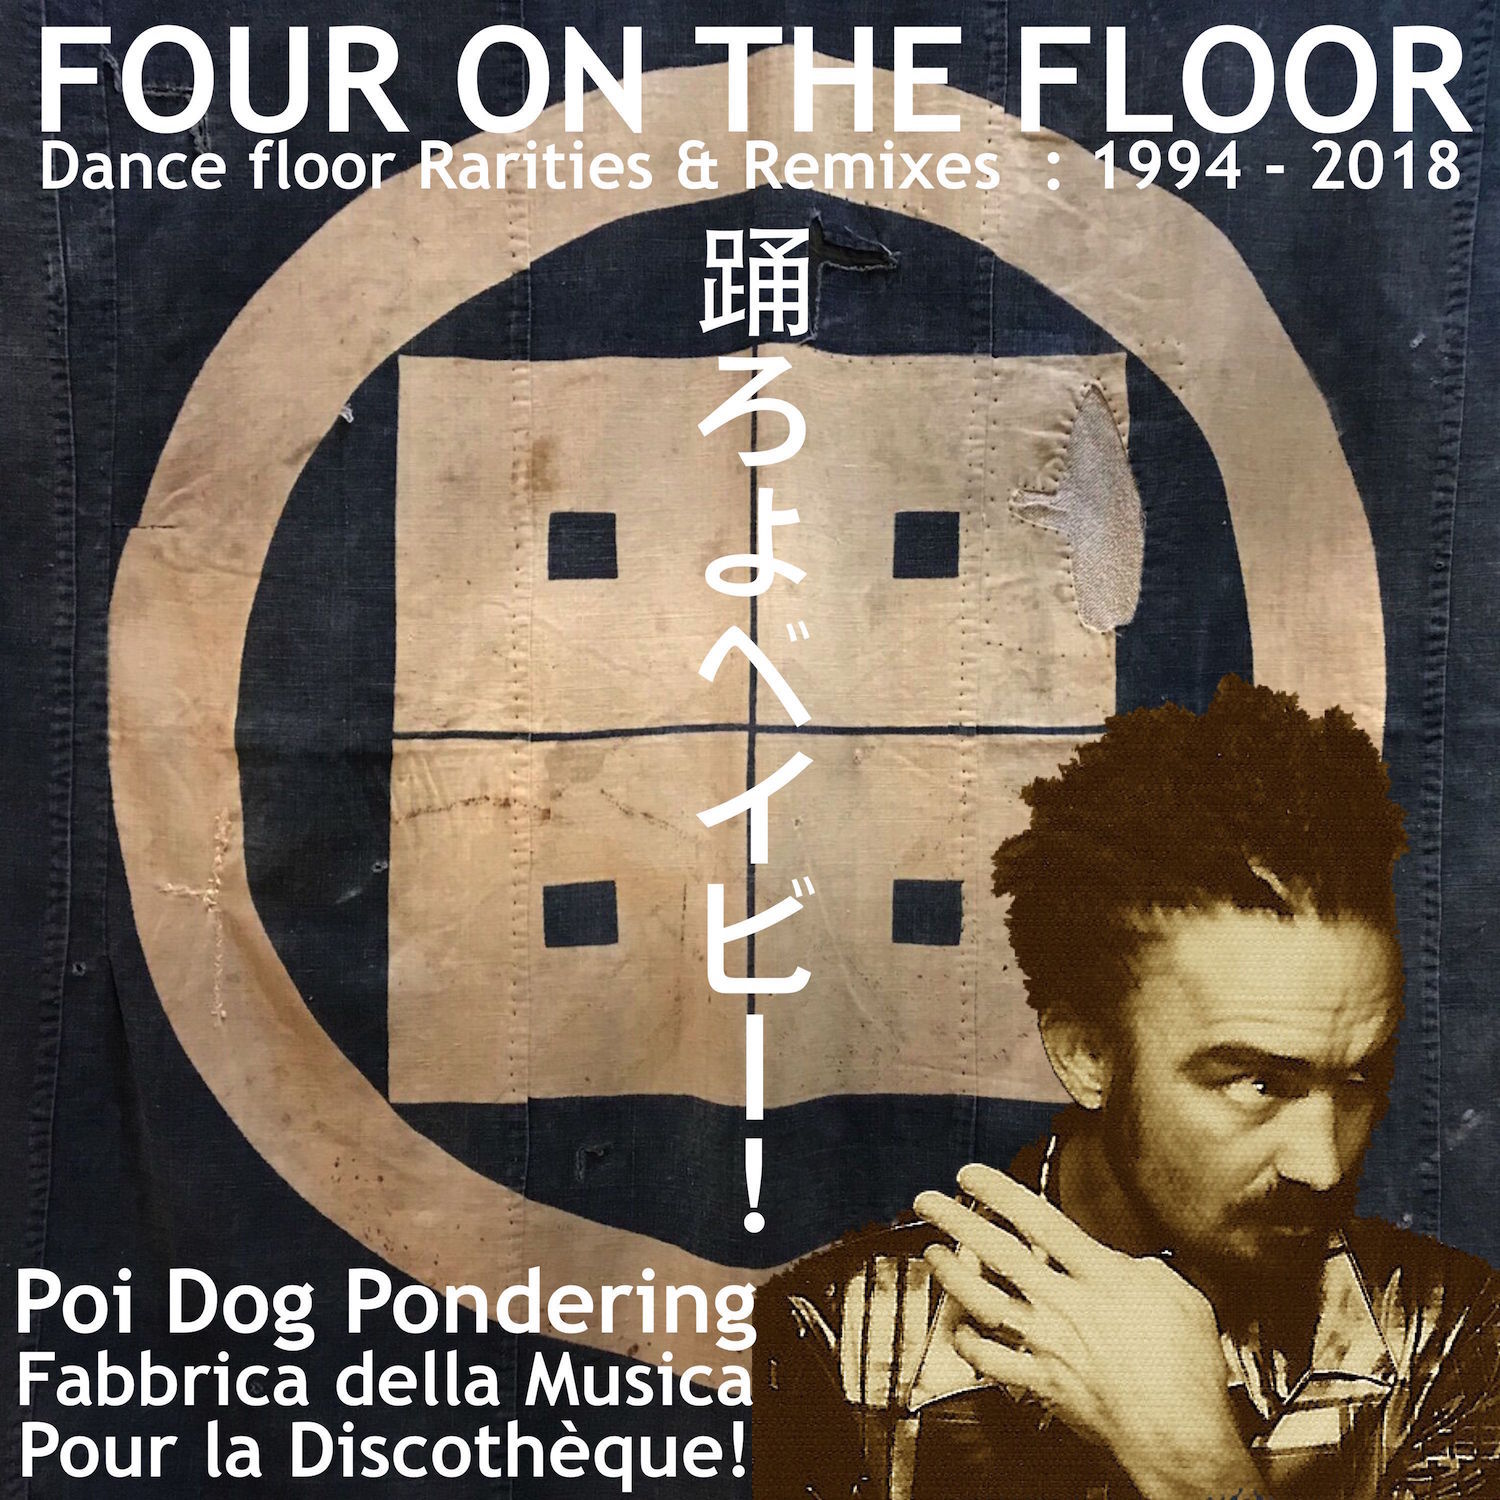 Poi Dog Pondering - Four on the floor cover - Frank ex-small copy.jpeg